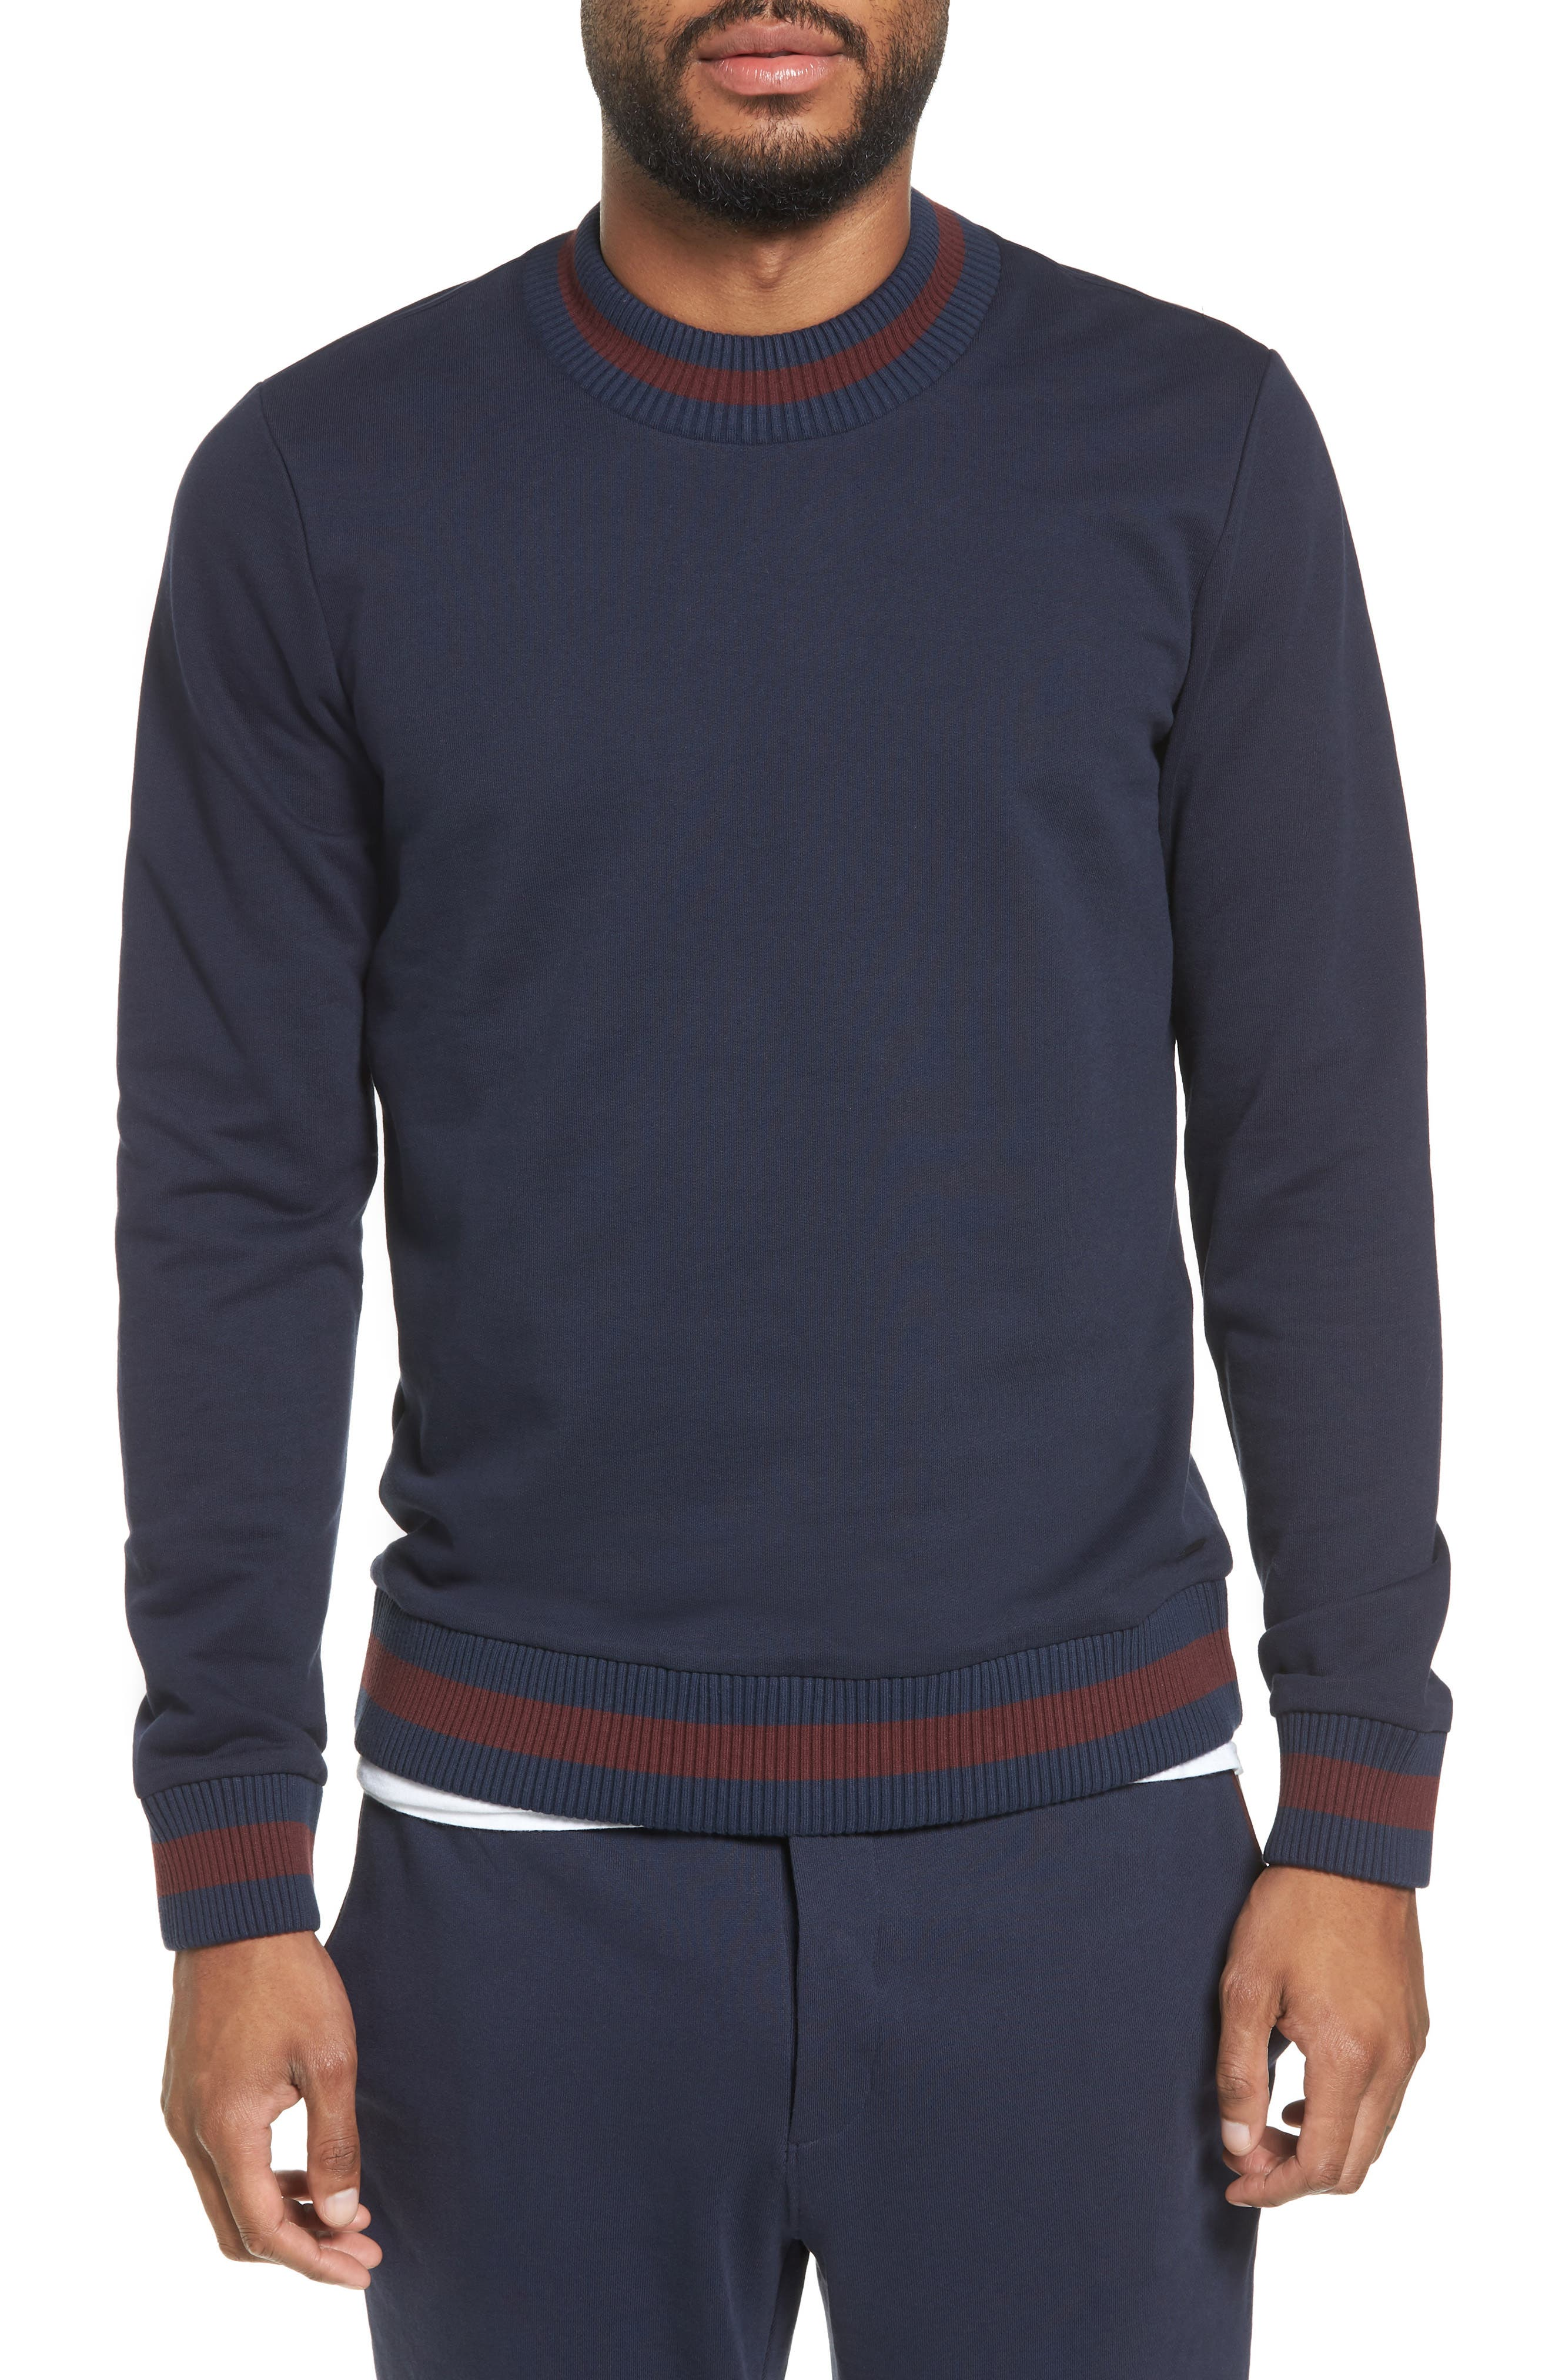 Skubic Slim Crewneck Sweatshirt,                             Main thumbnail 1, color,                             Navy